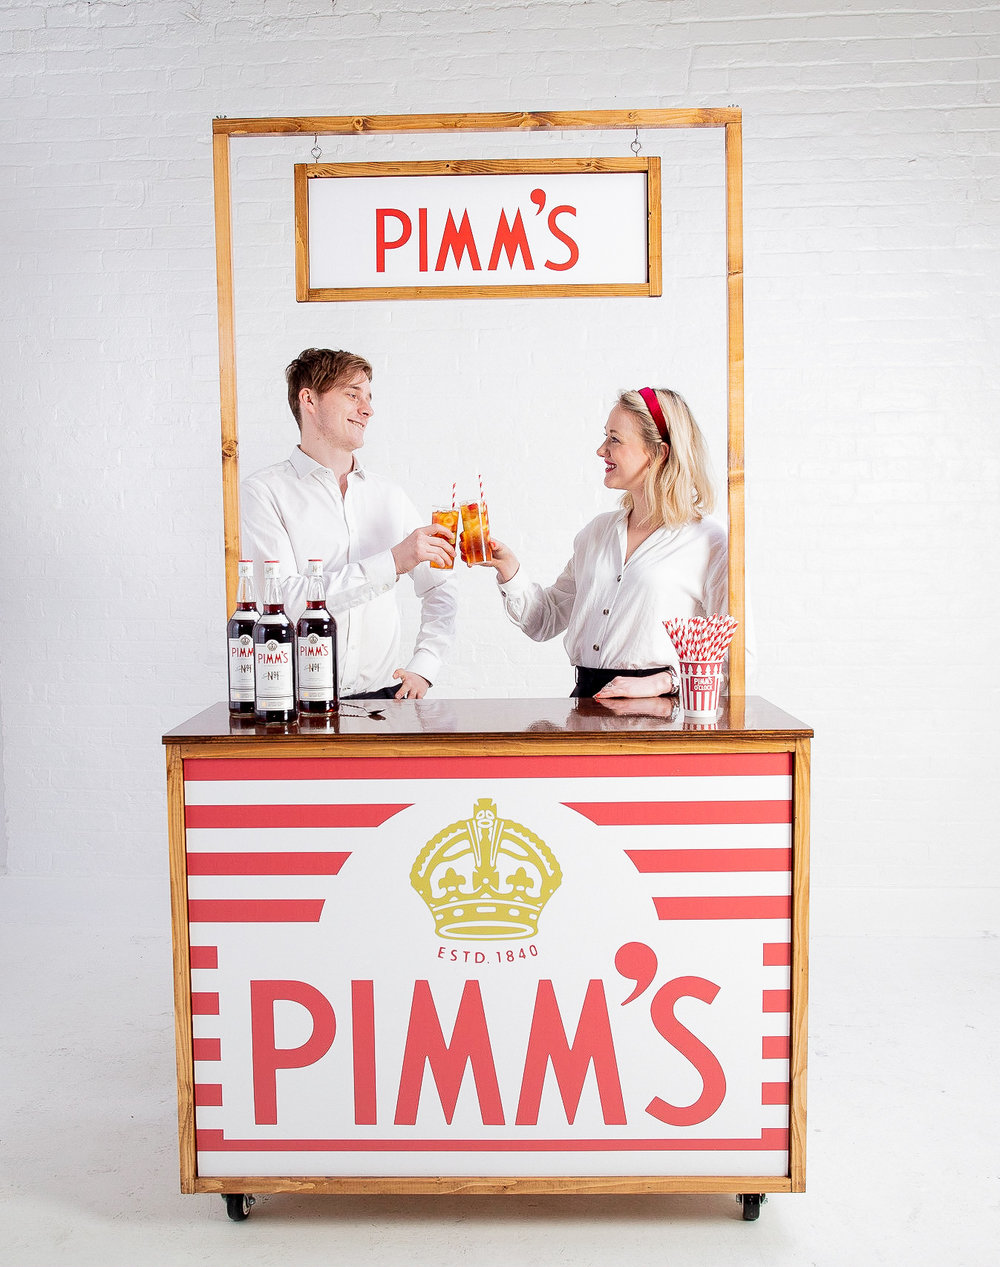 Quirky Group Pimms fully branded cocktail bar with bartenders